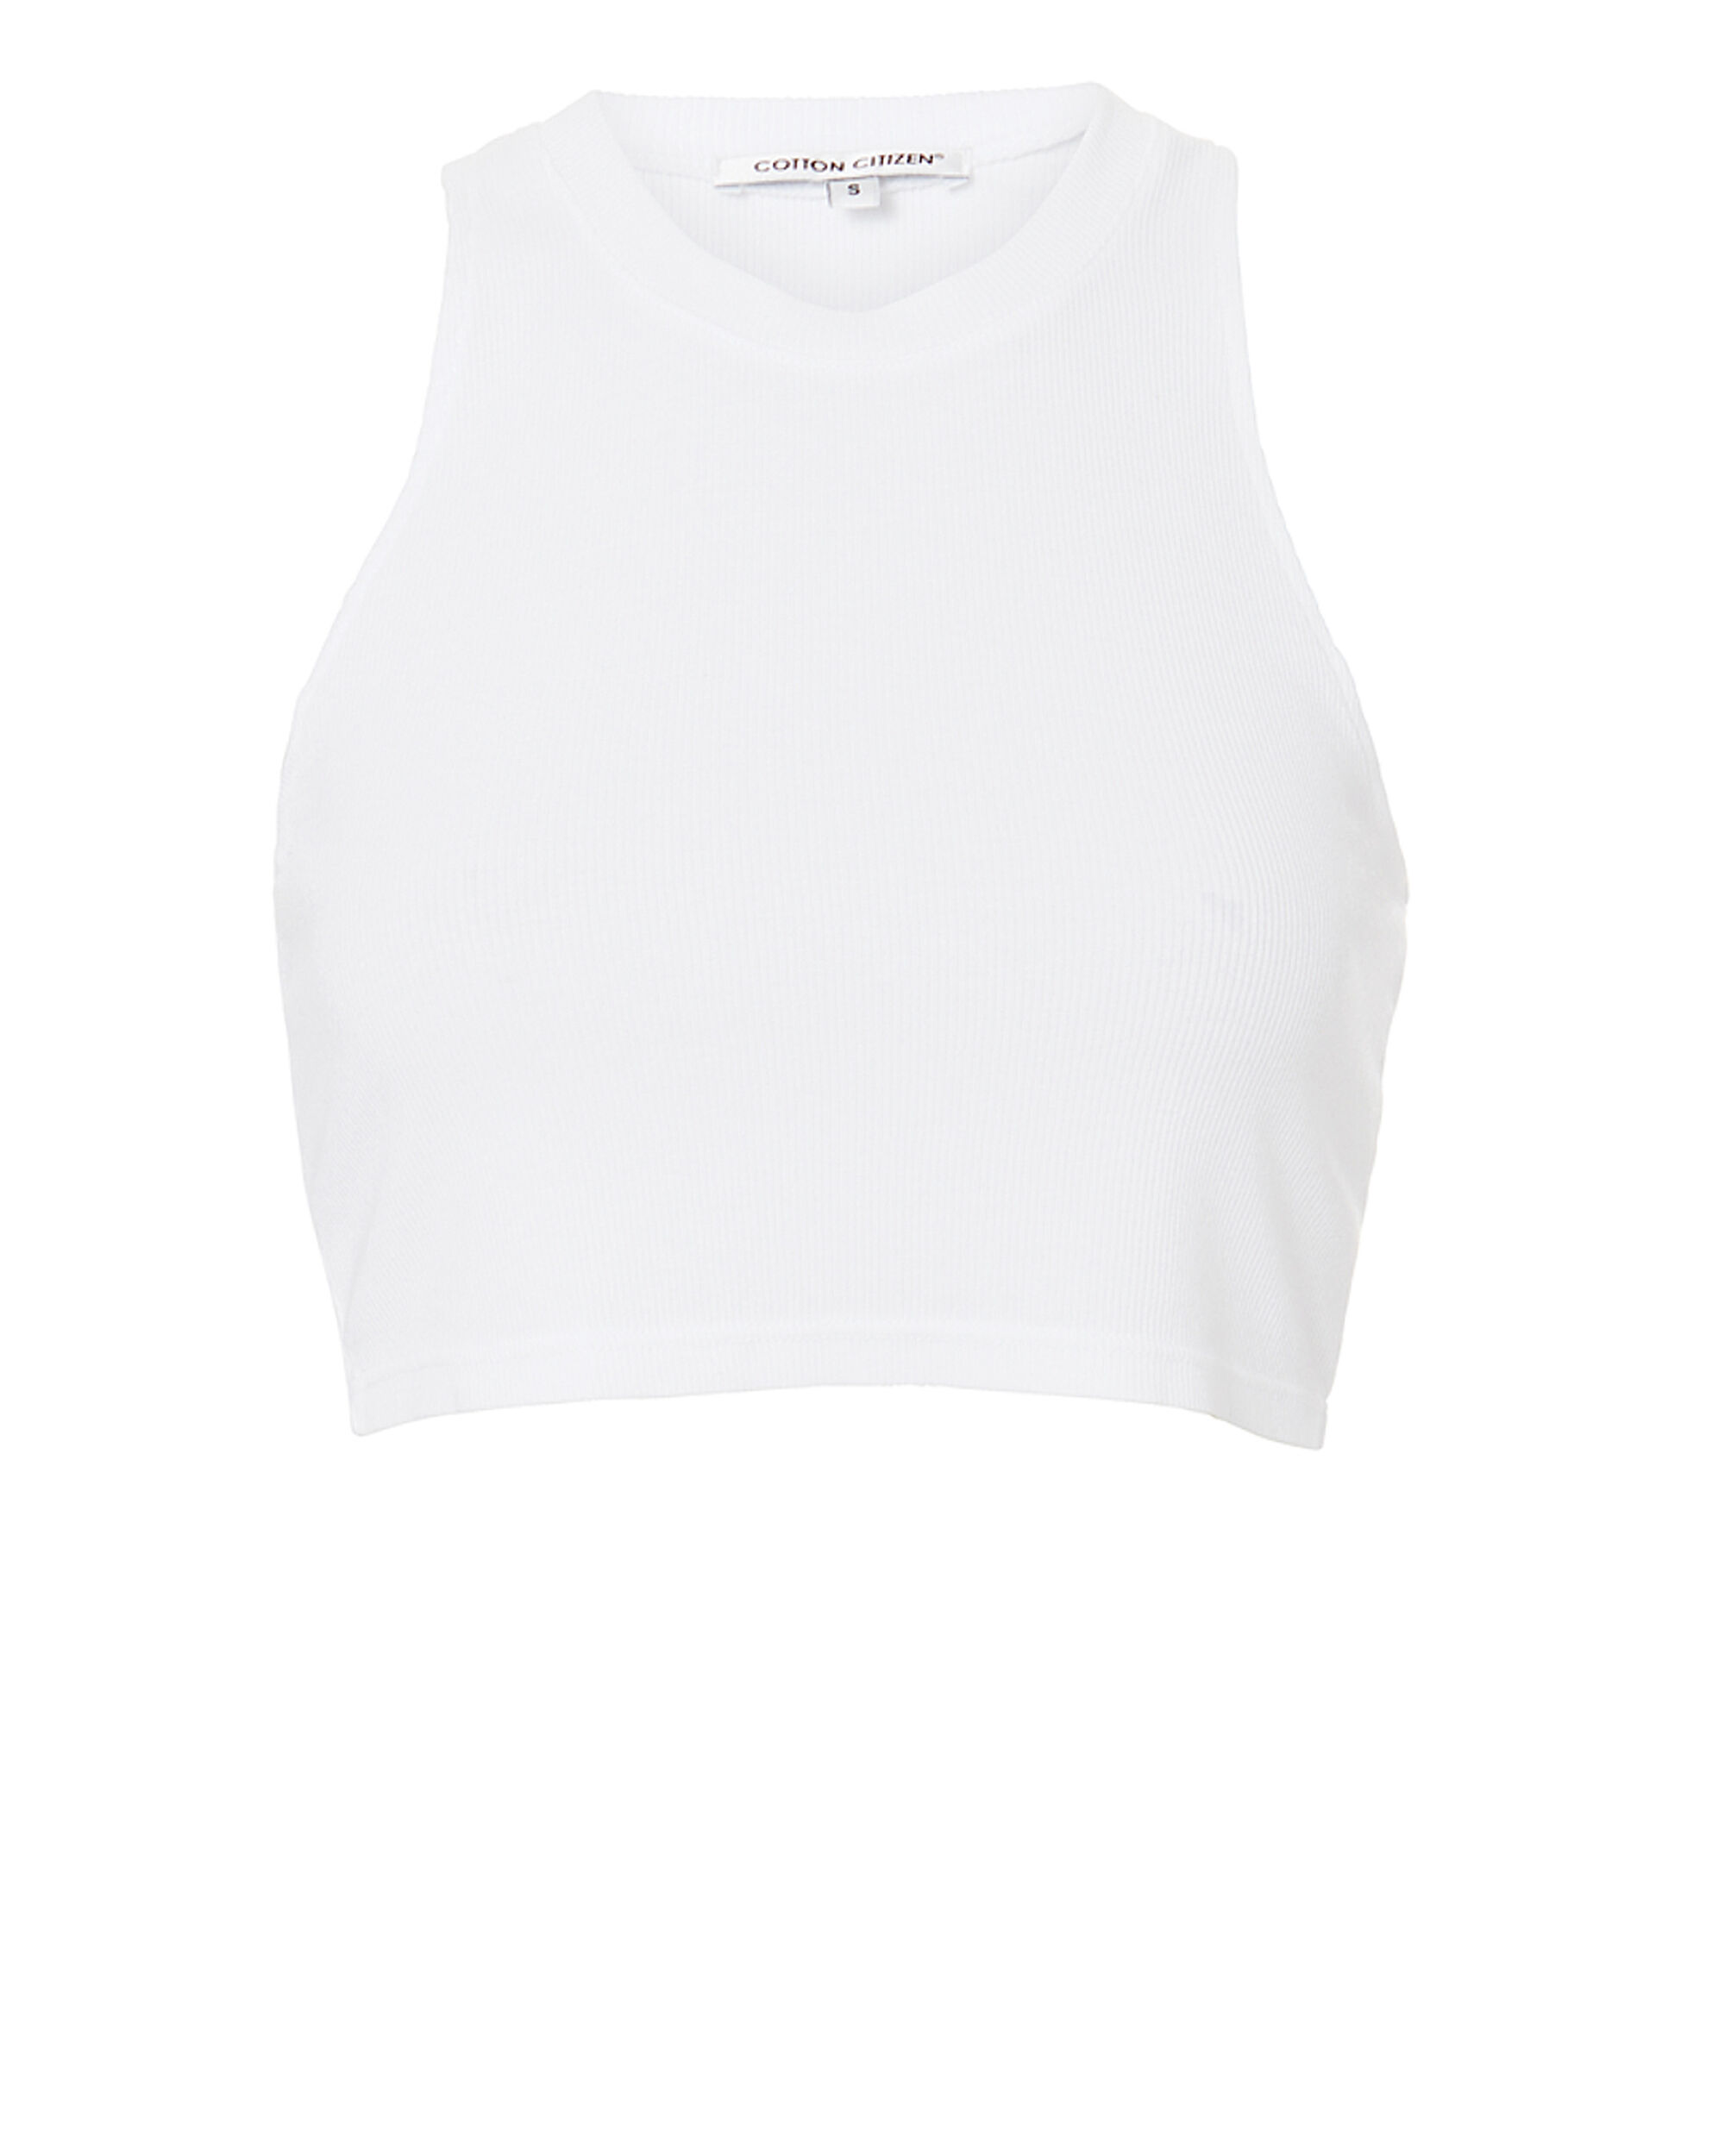 Venice Cropped Tank, WHITE, hi-res